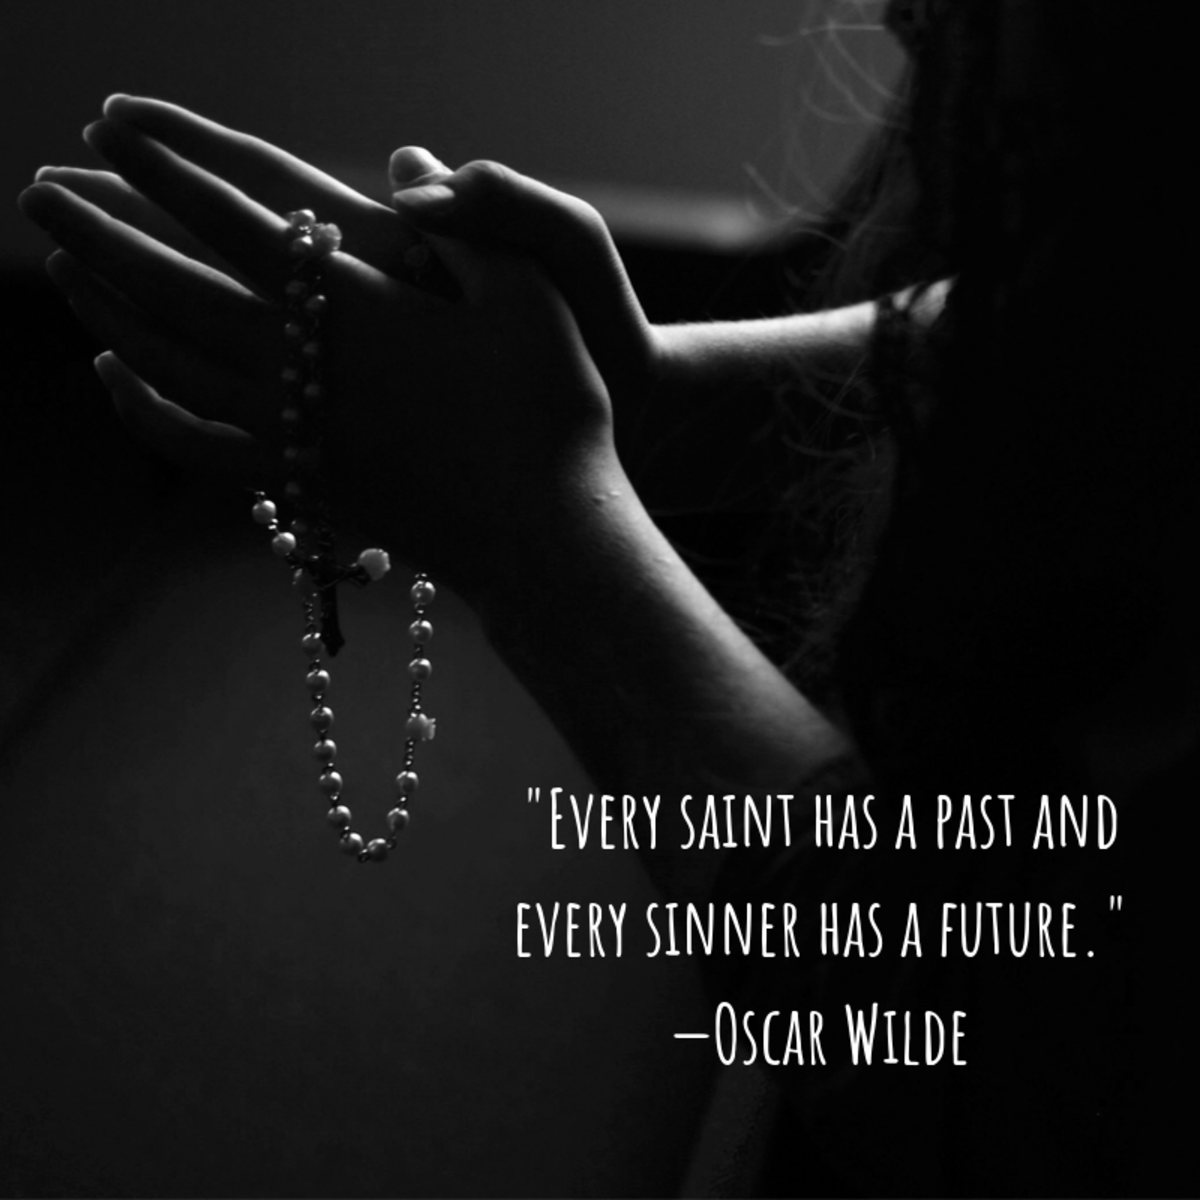 """Every saint has a past and every sinner has a future."" —Oscar Wilde"